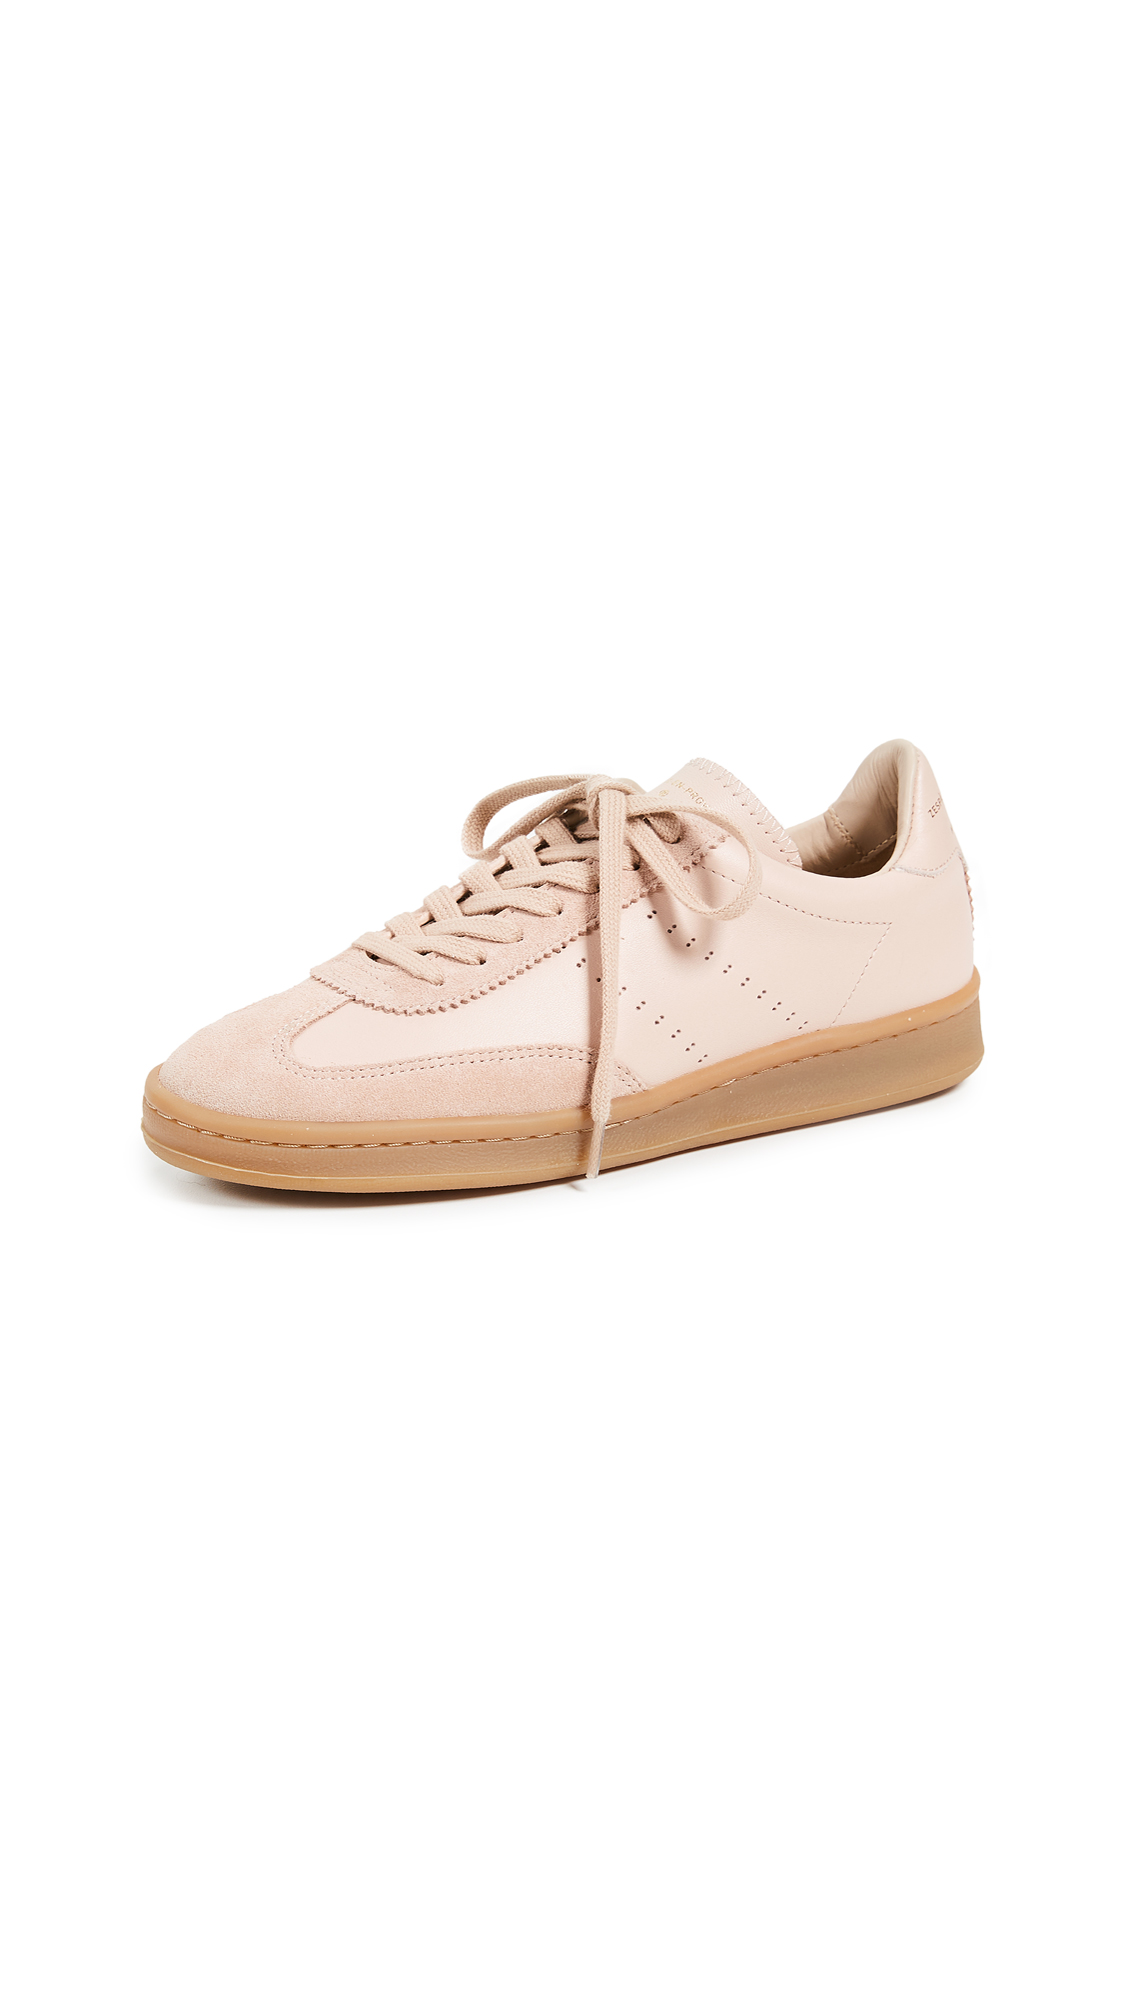 Zespa Lace Up Sneakers In Nude